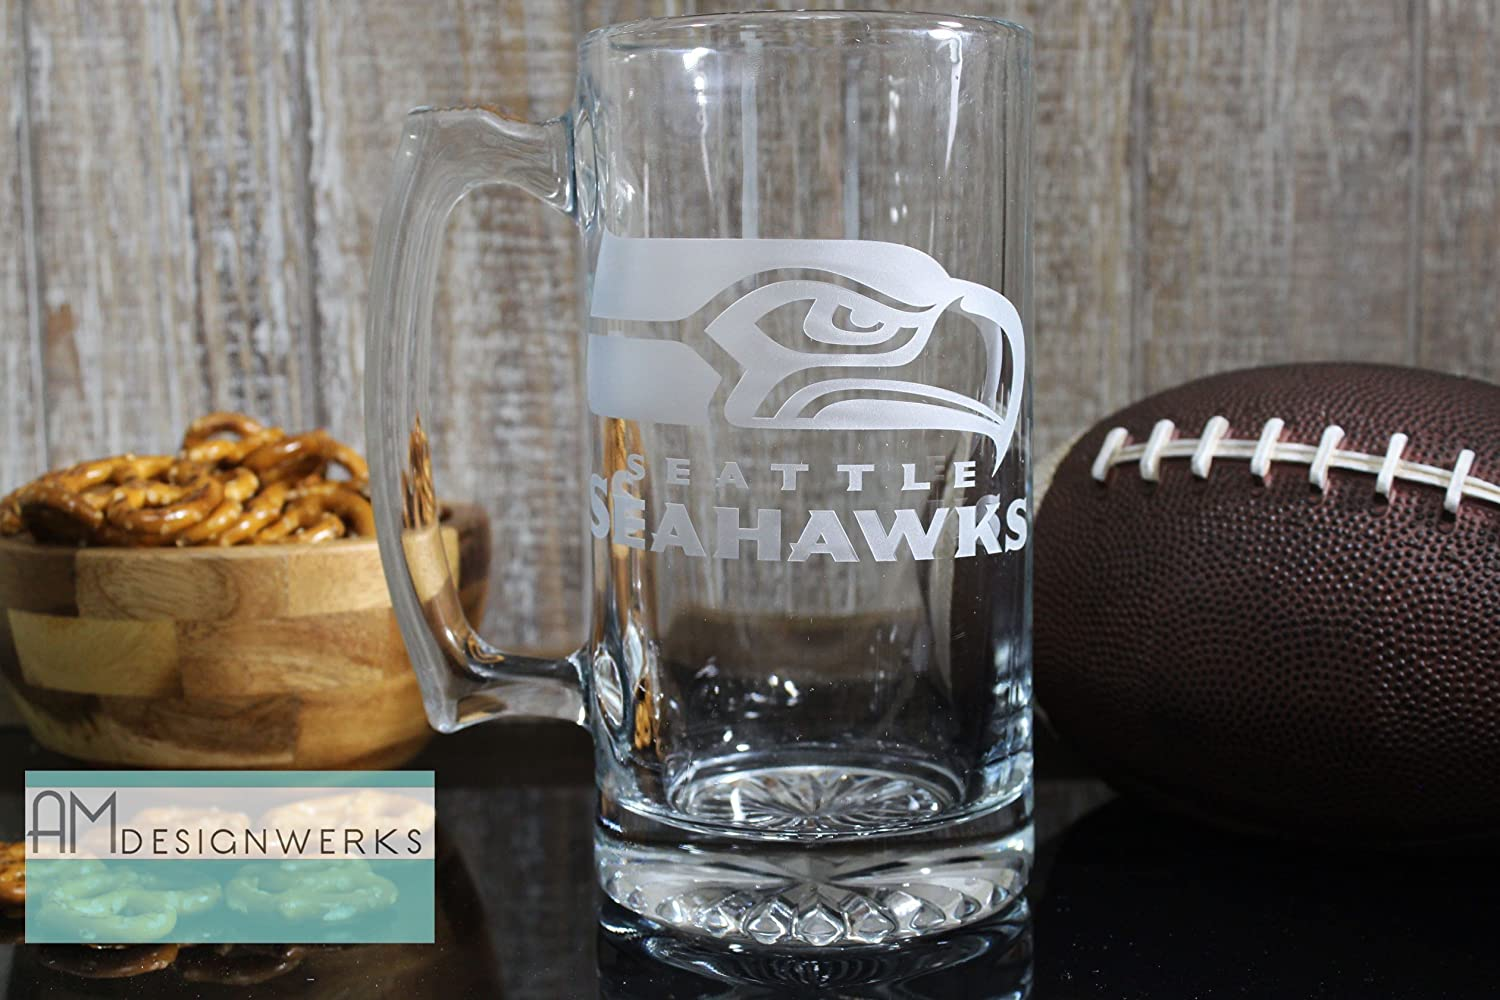 Seattle Seahawks Jumbo 28.5oz Hand Etched Glass Beer Mug